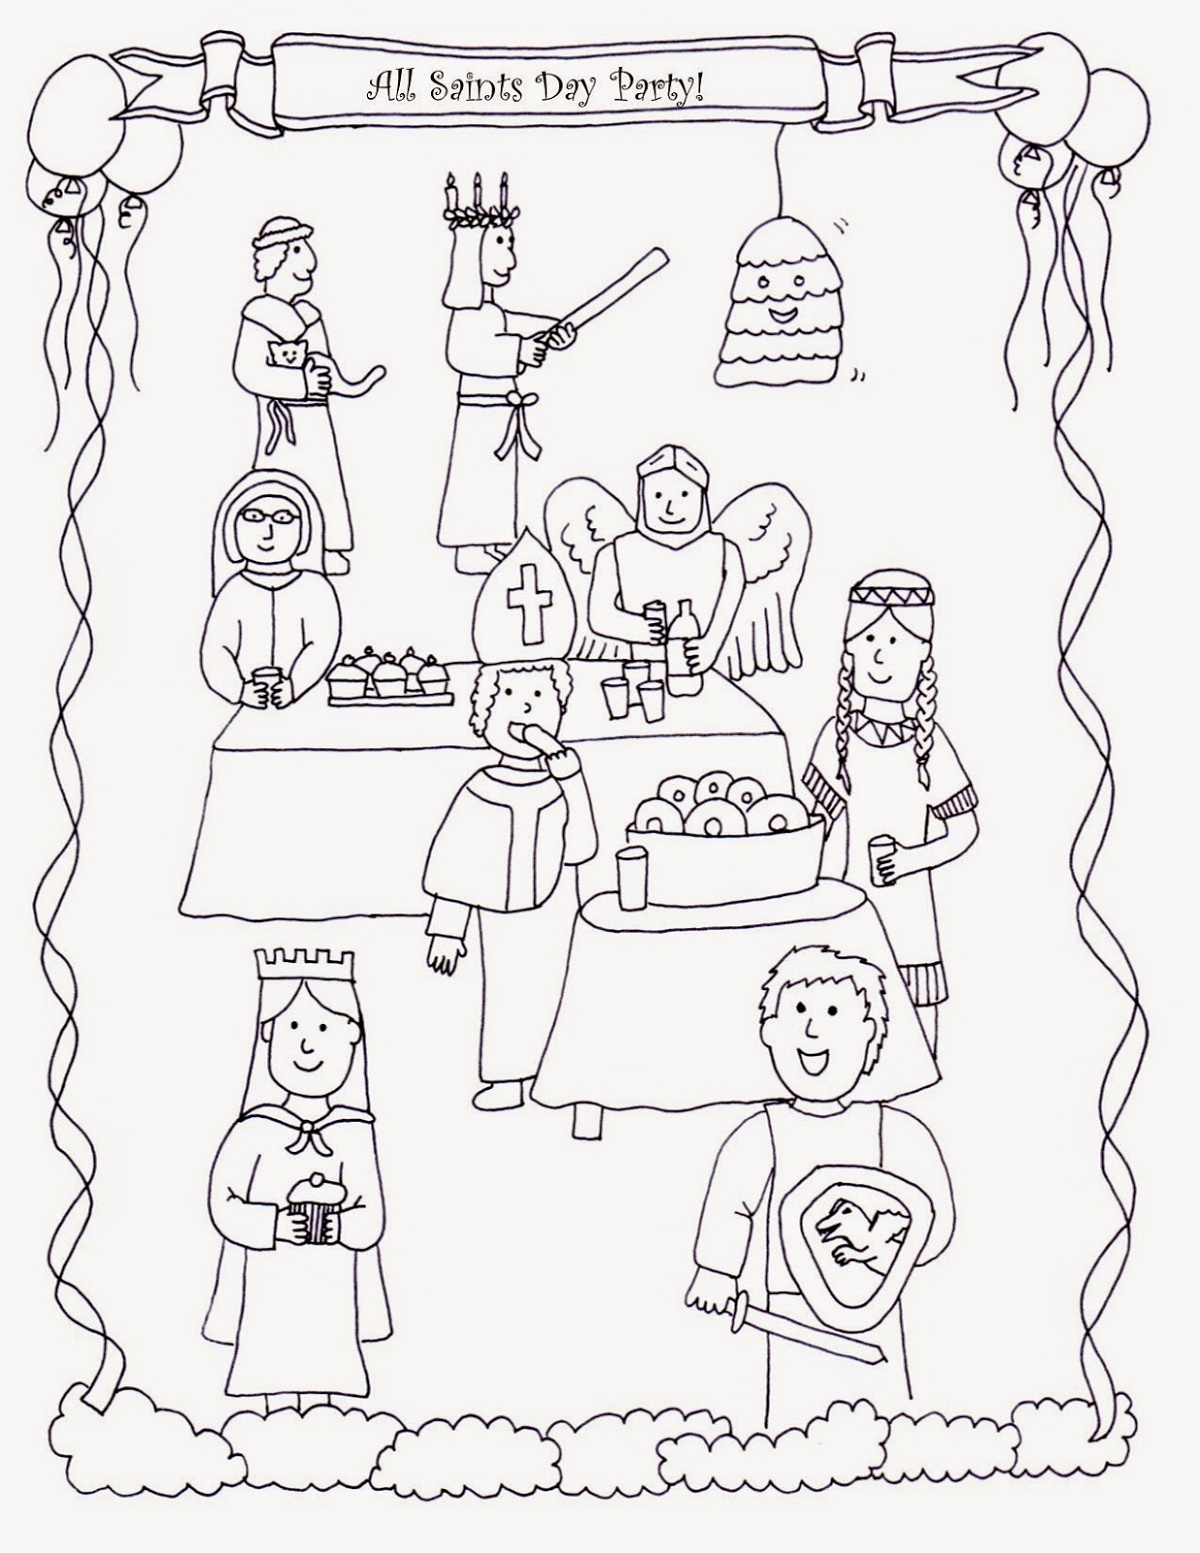 All Saints Day Coloring Pages For Kids